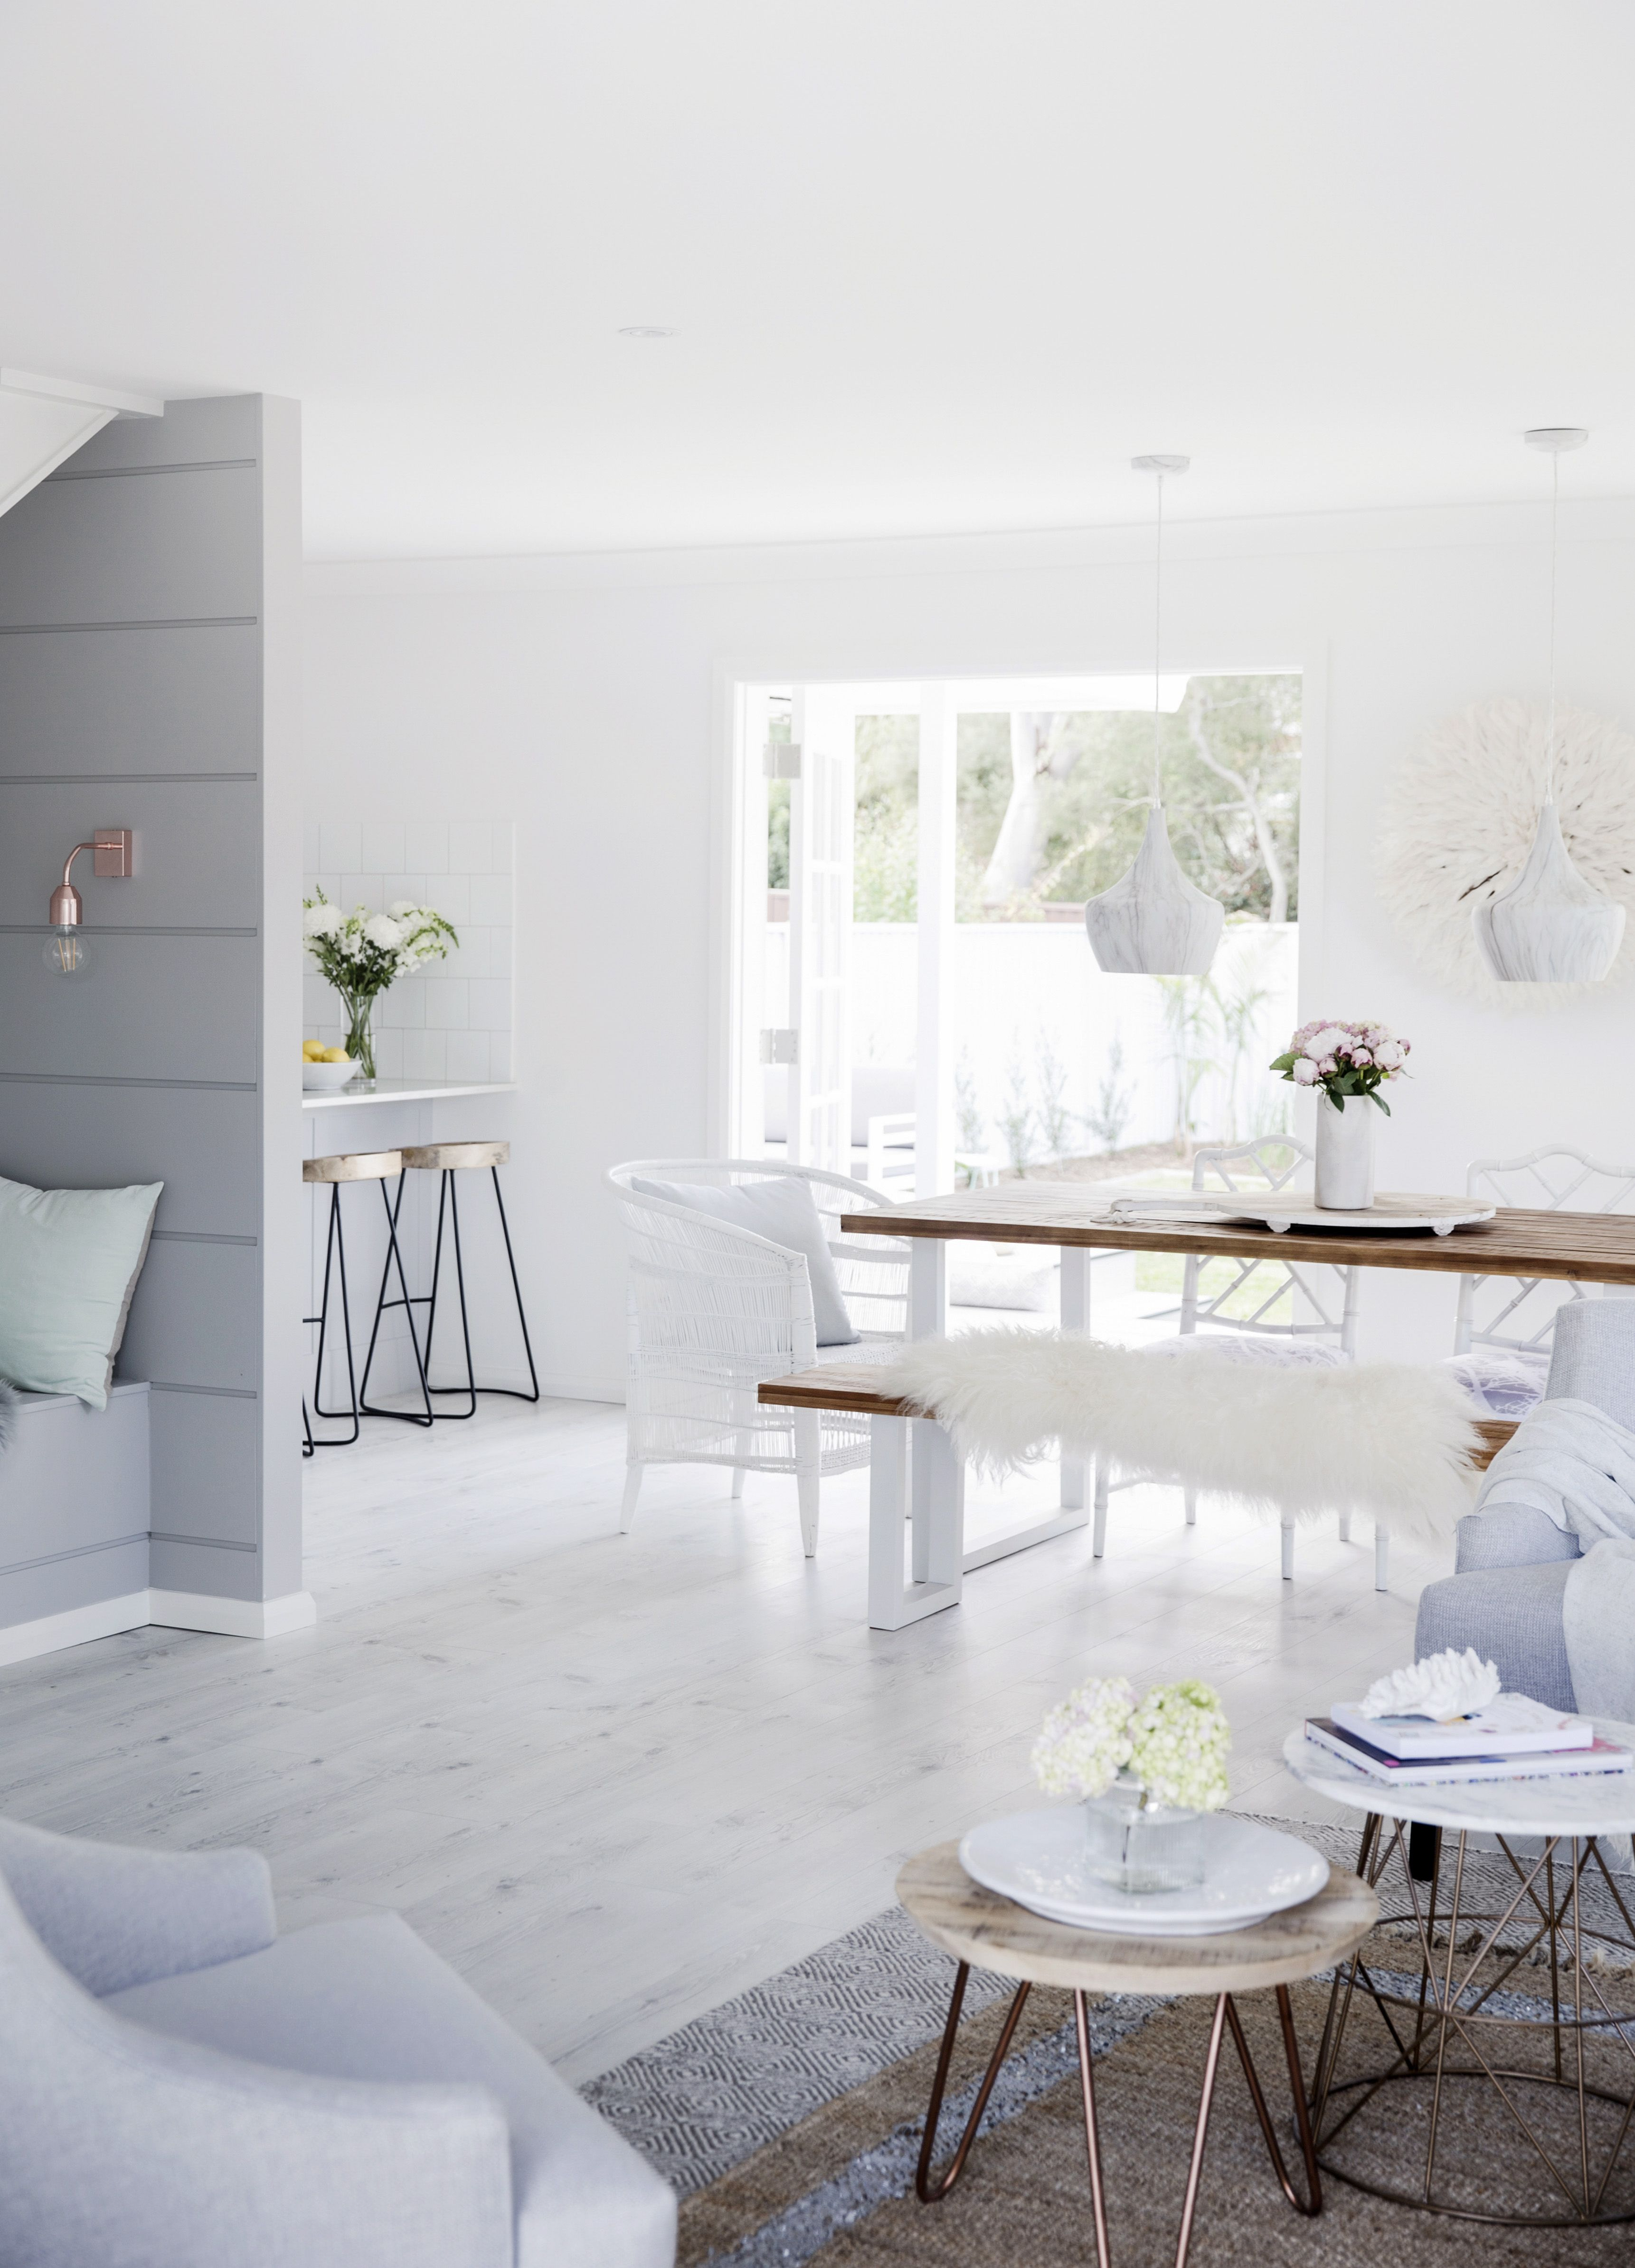 Total transformation: Hamptons-style haven | Home Sweet Home ...